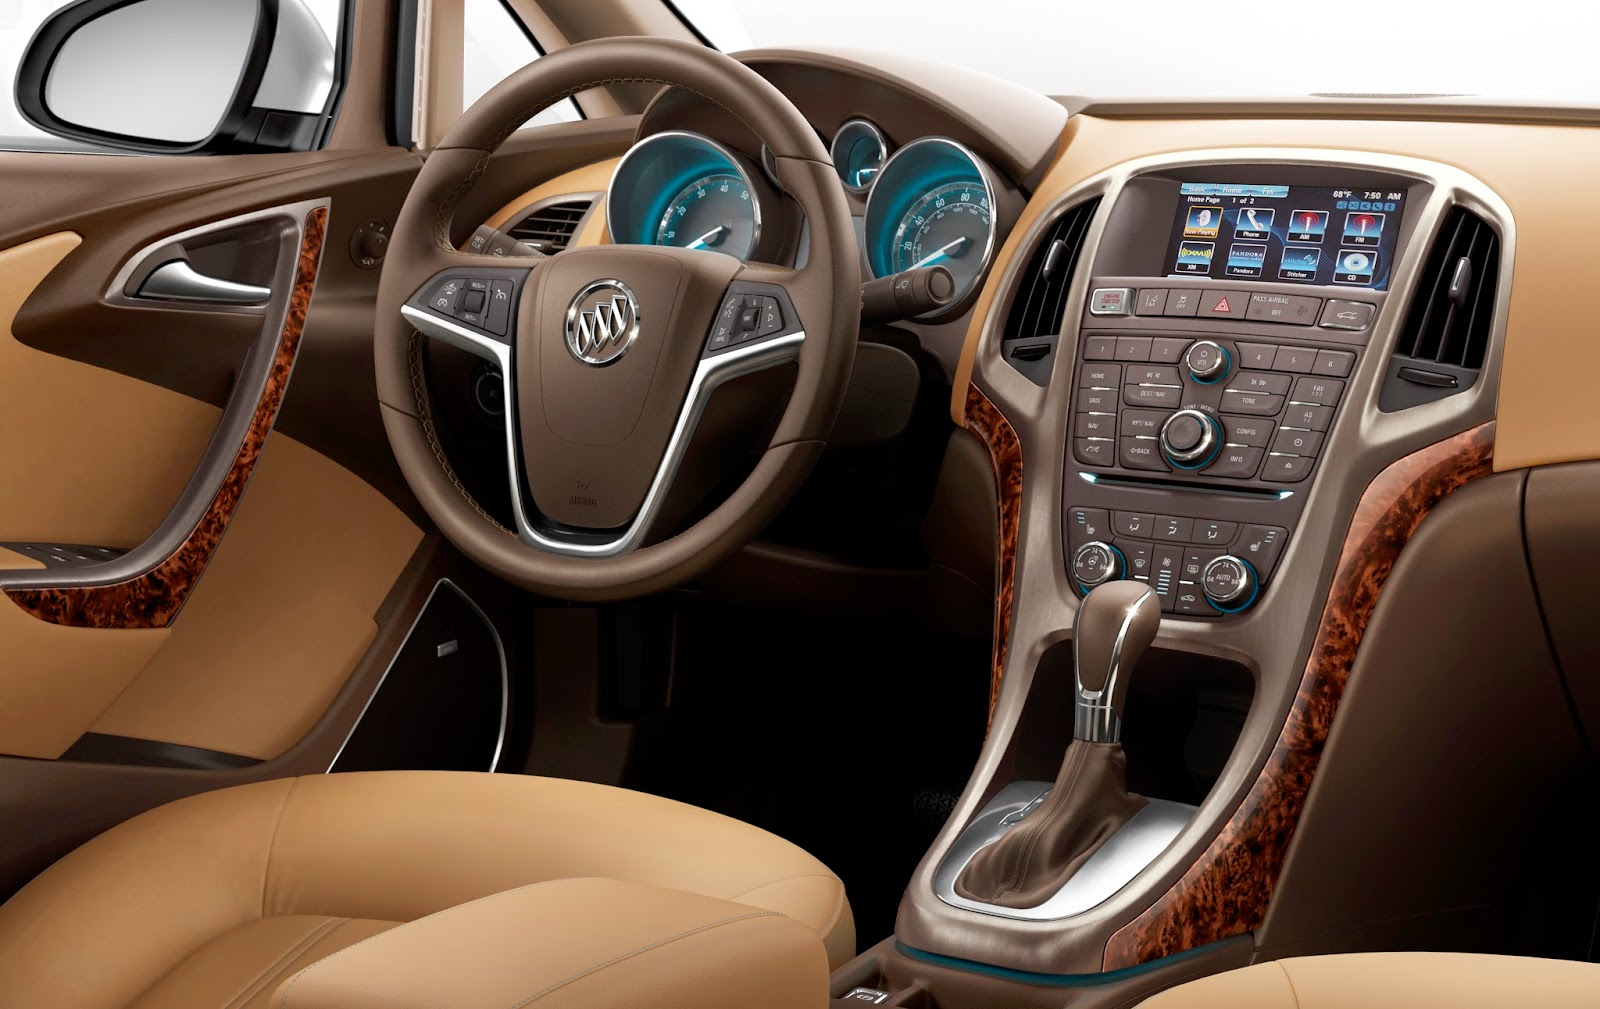 Interior View of 2014 Buick Verano